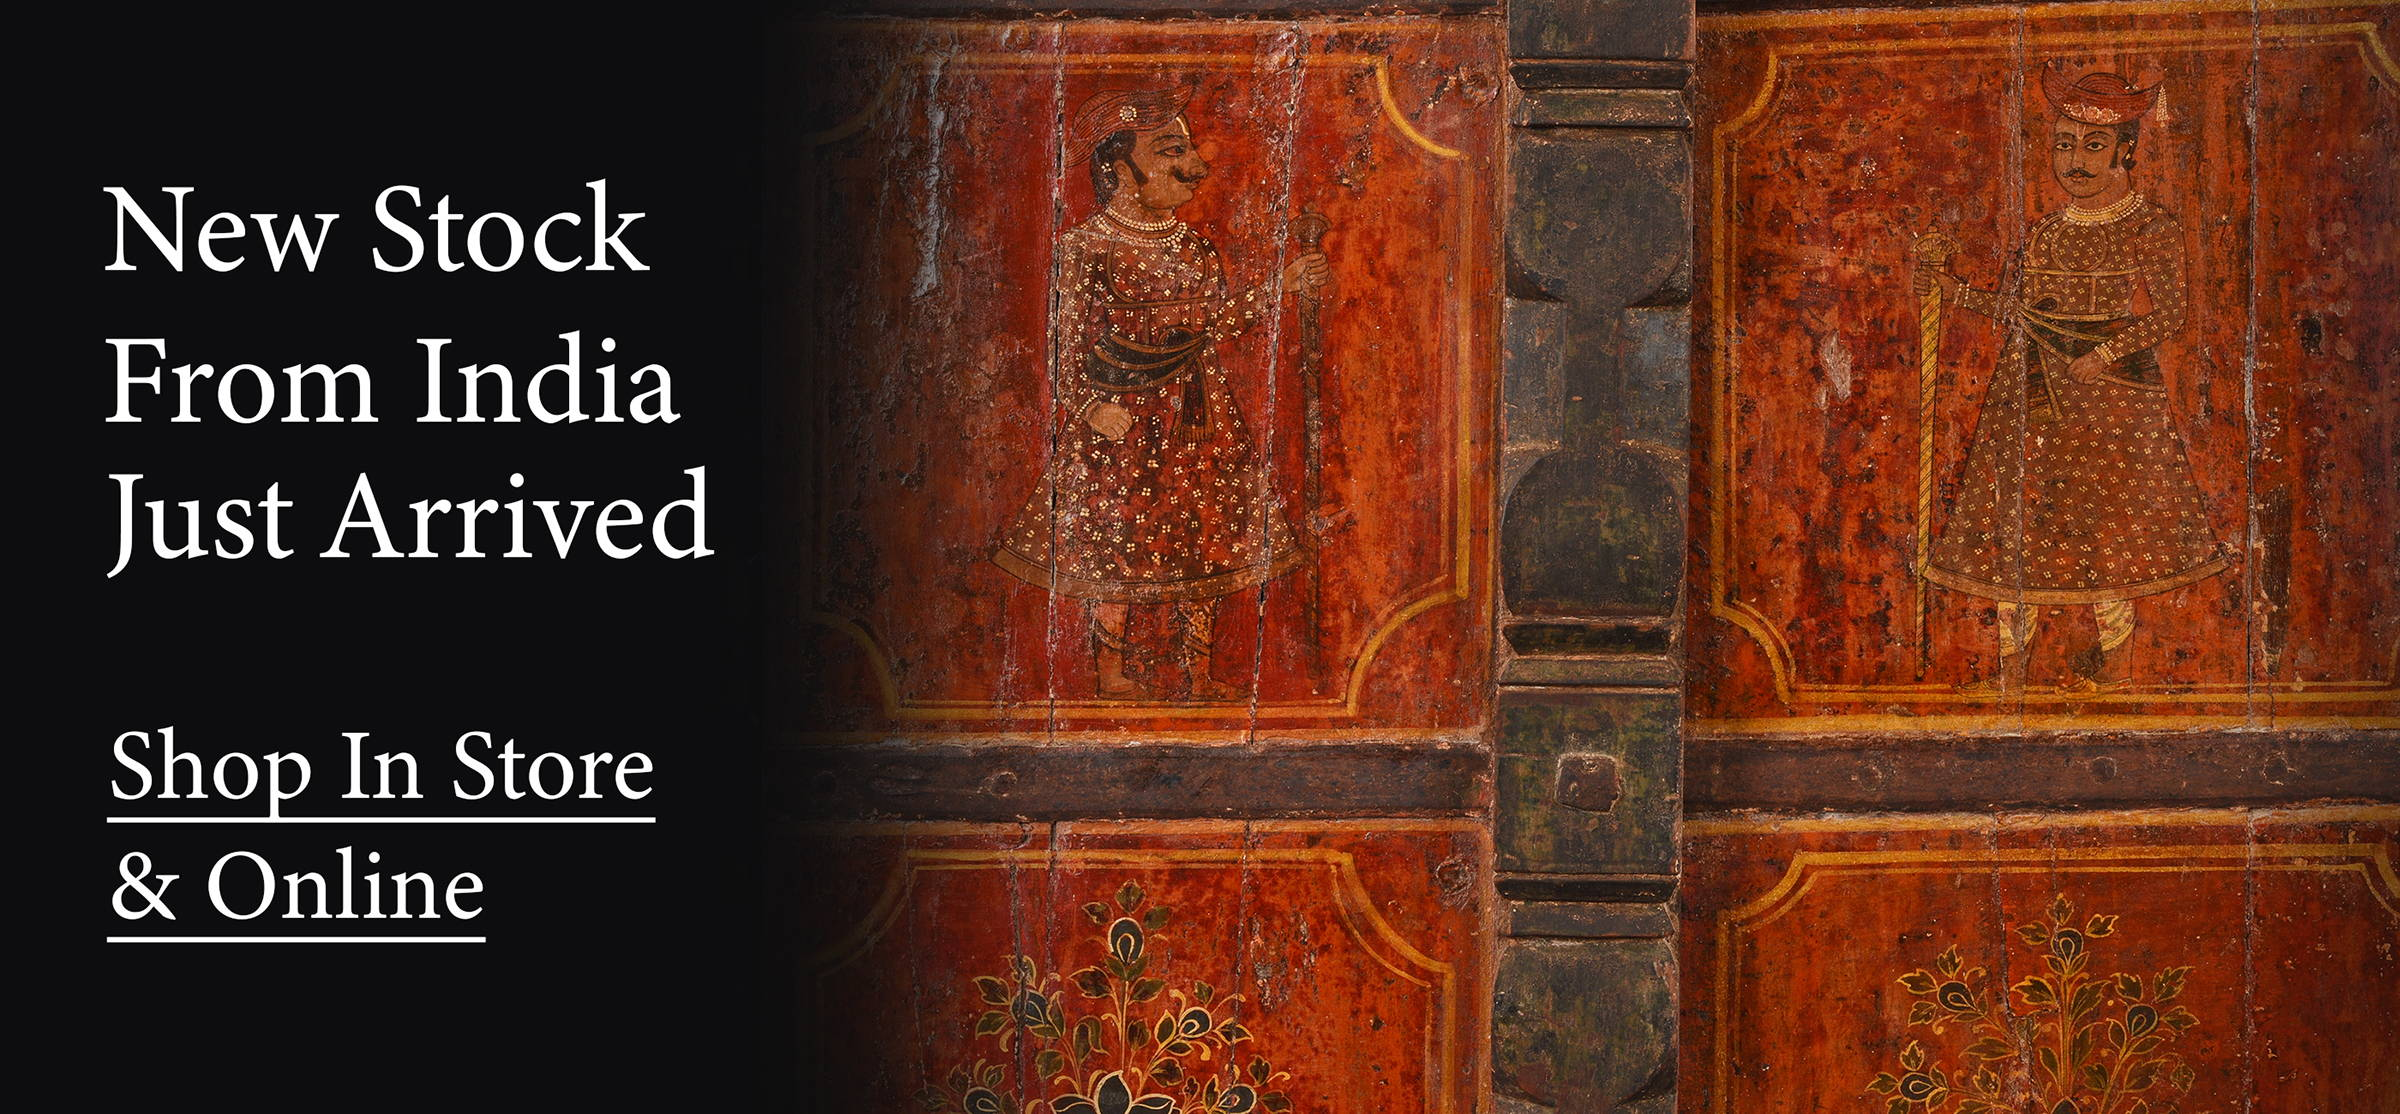 Shop our latest arrivals of Indian antique furniture and architecture such as these antique painted Indian doors from Bikaner